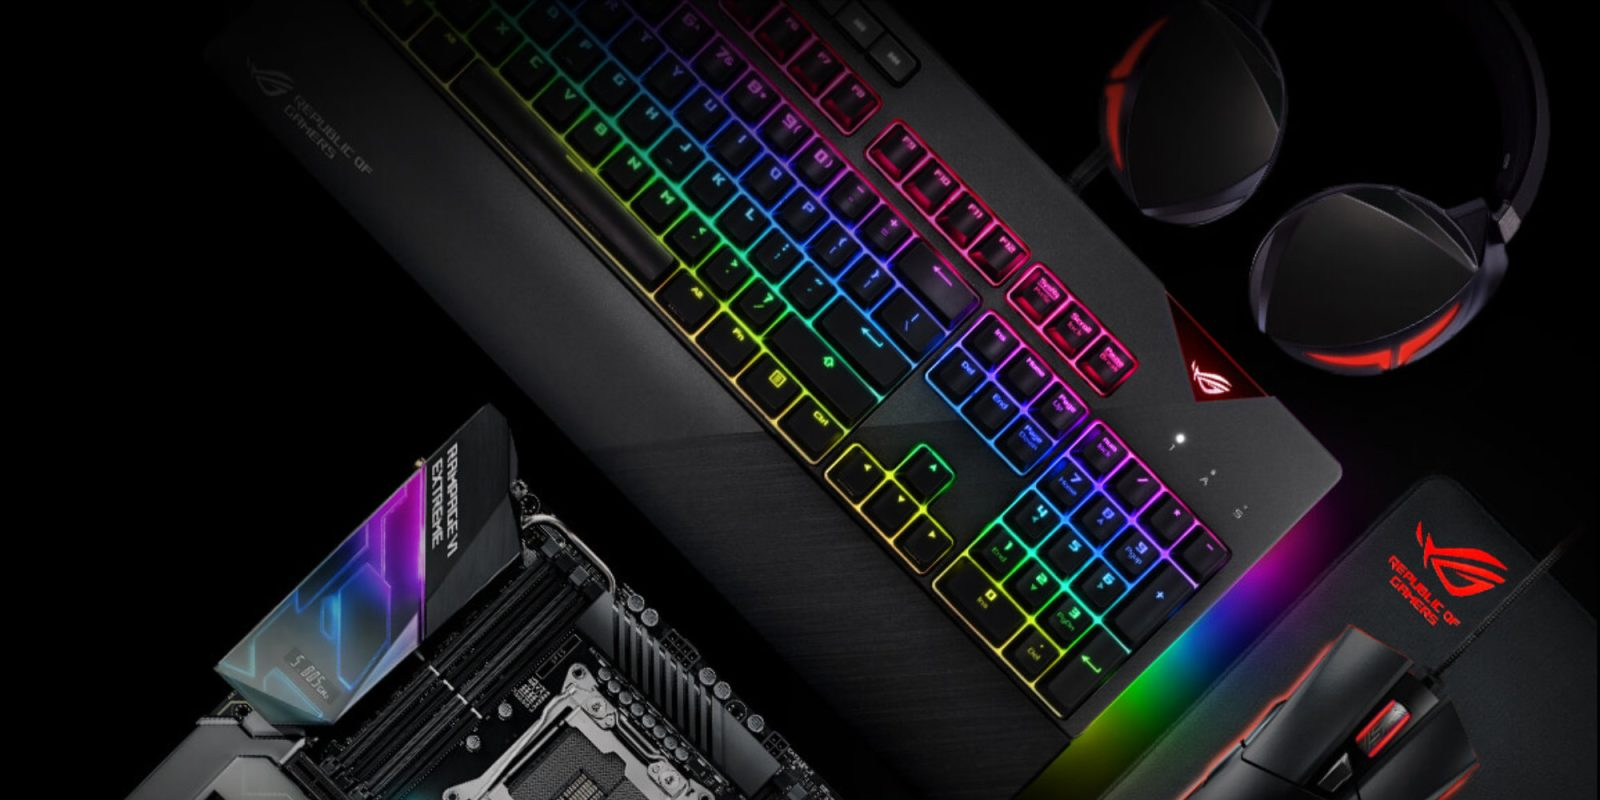 RGB awaits in ASUS' ROG Strix Flare Mechanical Keyboard: $120 (Reg. $160+)